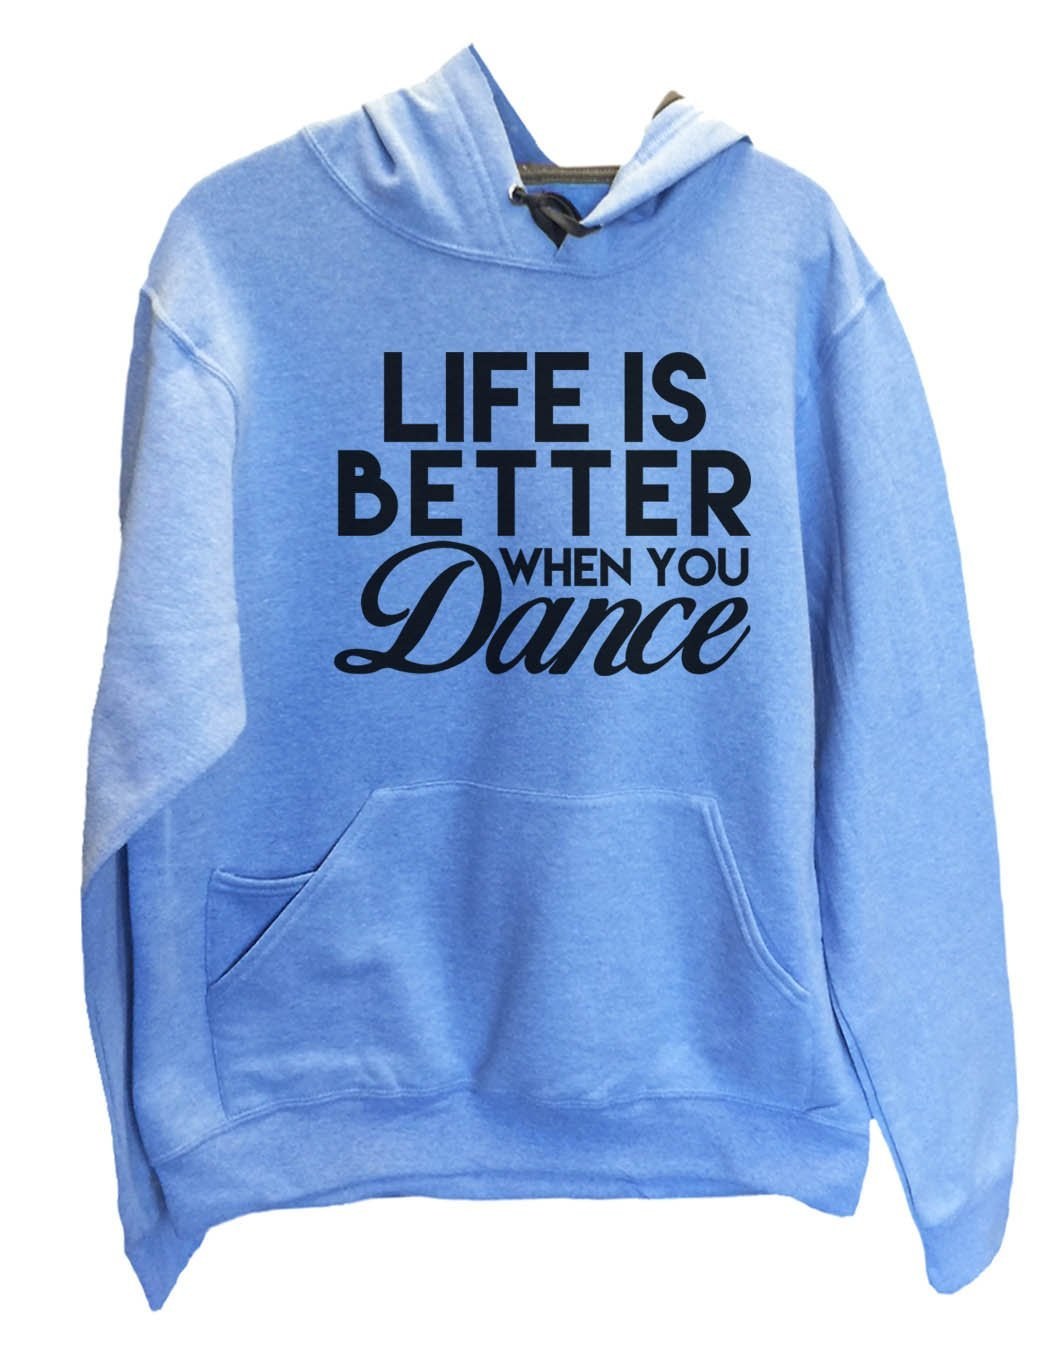 UNISEX HOODIE - Life Is Better When Dance - FUNNY MENS AND WOMENS HOODED SWEATSHIRTS - 2127 Funny Shirt Small / North Carolina Blue